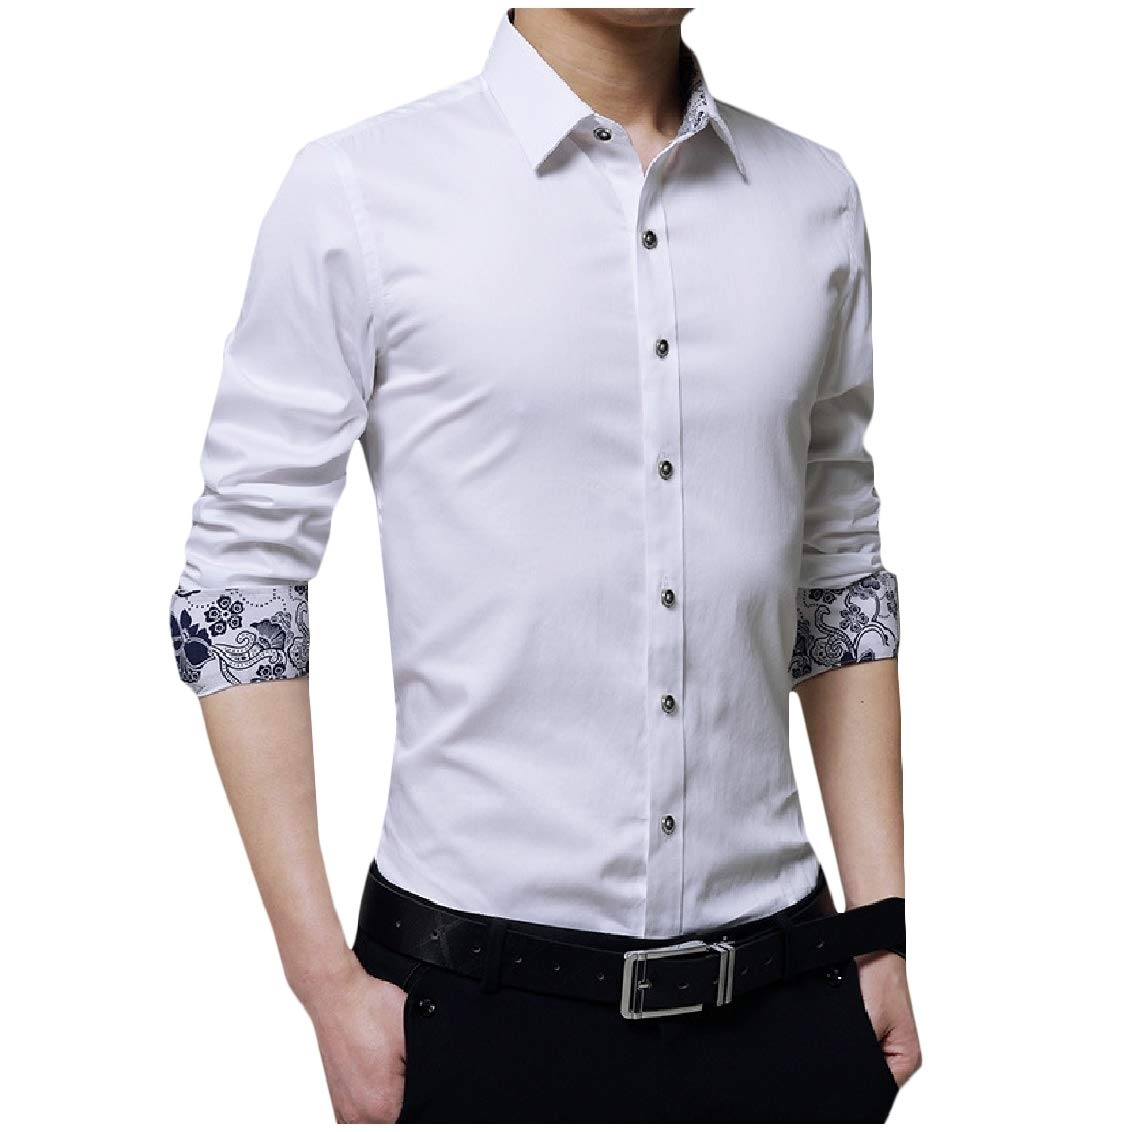 Fieer Mens Button Floral Printed Stitch Plus Size Lapel Fit T-Shirts Shirt